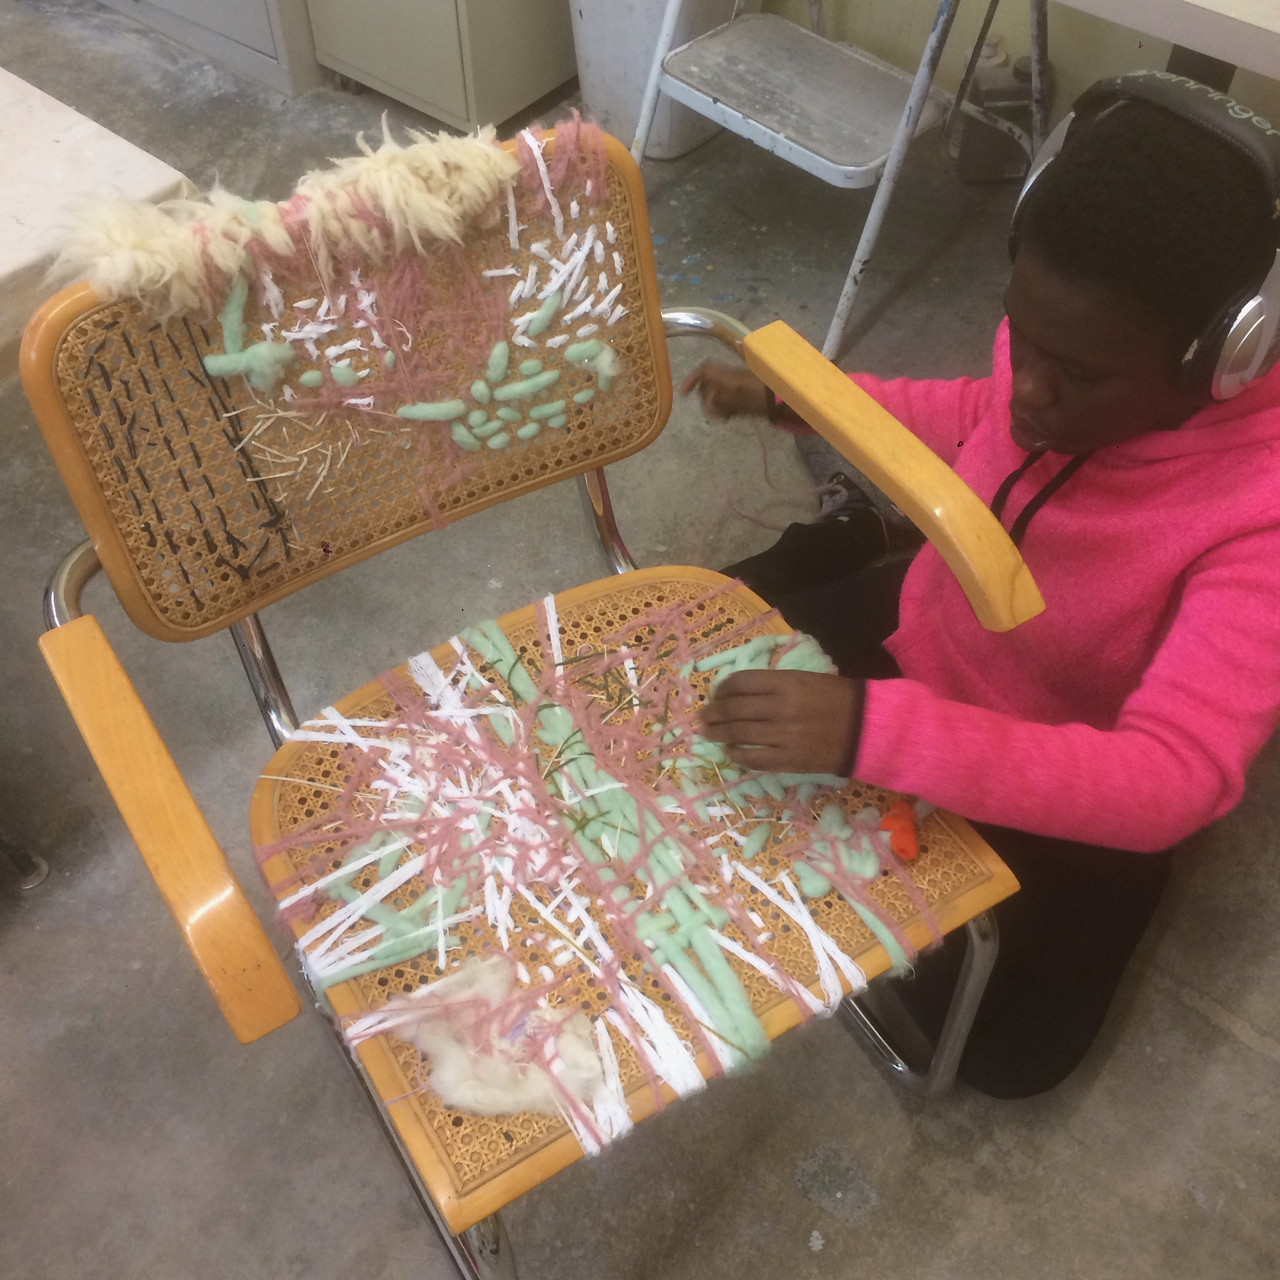 Woman in bright pink short kneeling on the ground weaving fibers into rattan chair